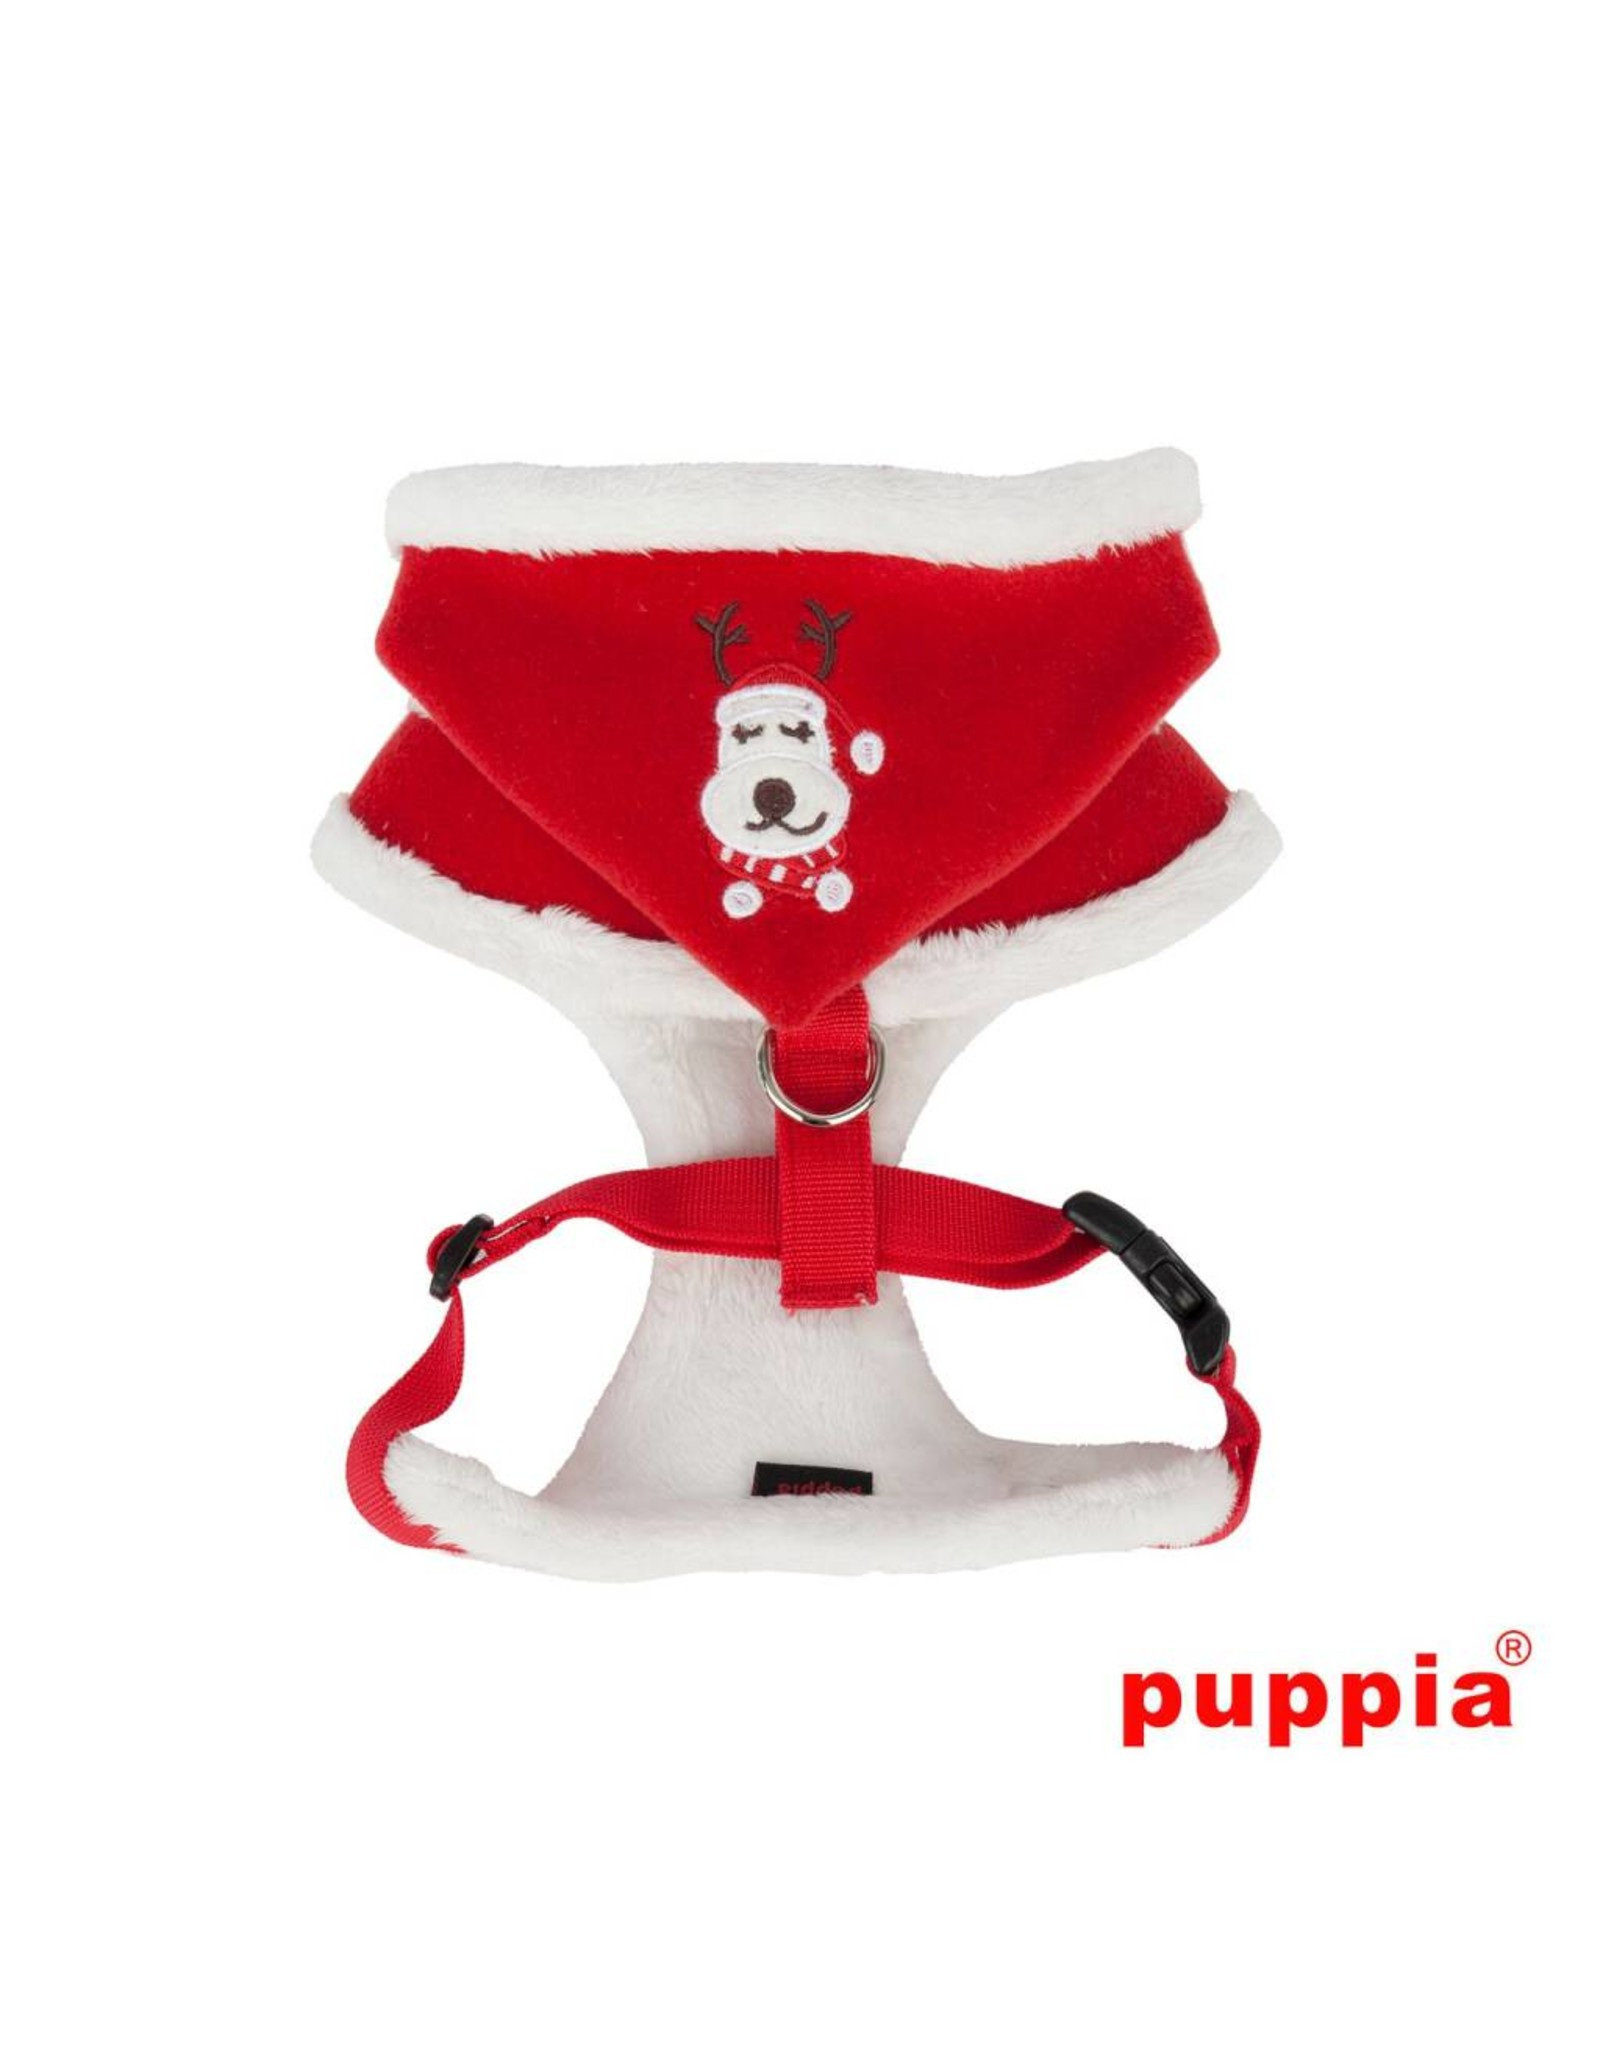 Puppia Puppia Rudolph Harness A Red